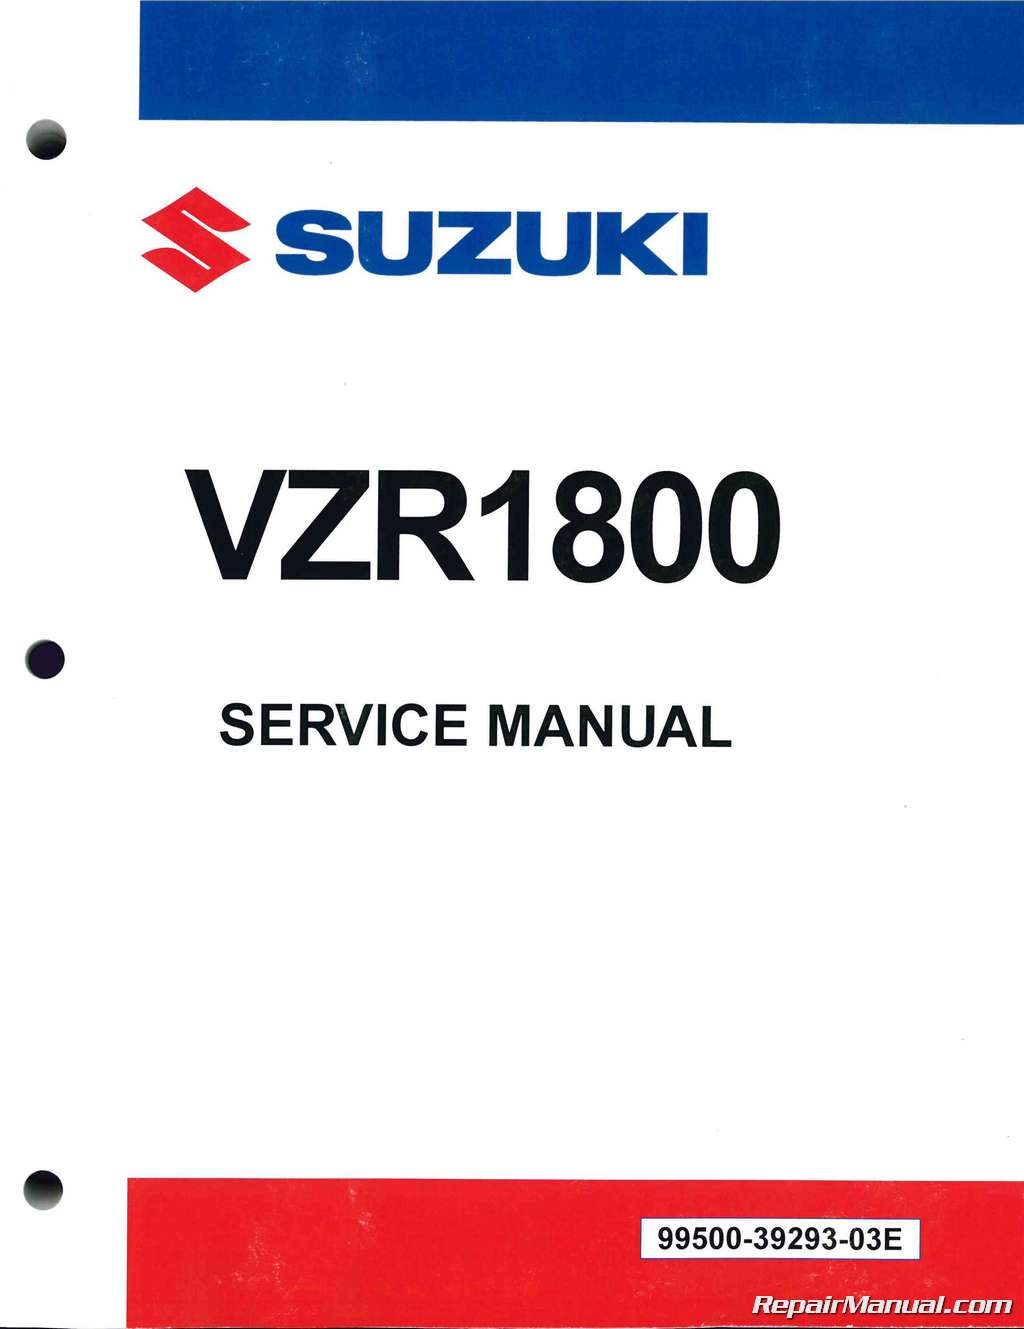 2006 2016 suzuki vzr1800 m109 boulevard motorcycle service manual rh repairmanual com suzuki owners manual dr350 pdf suzuki owners manual pdf 1999 dt115